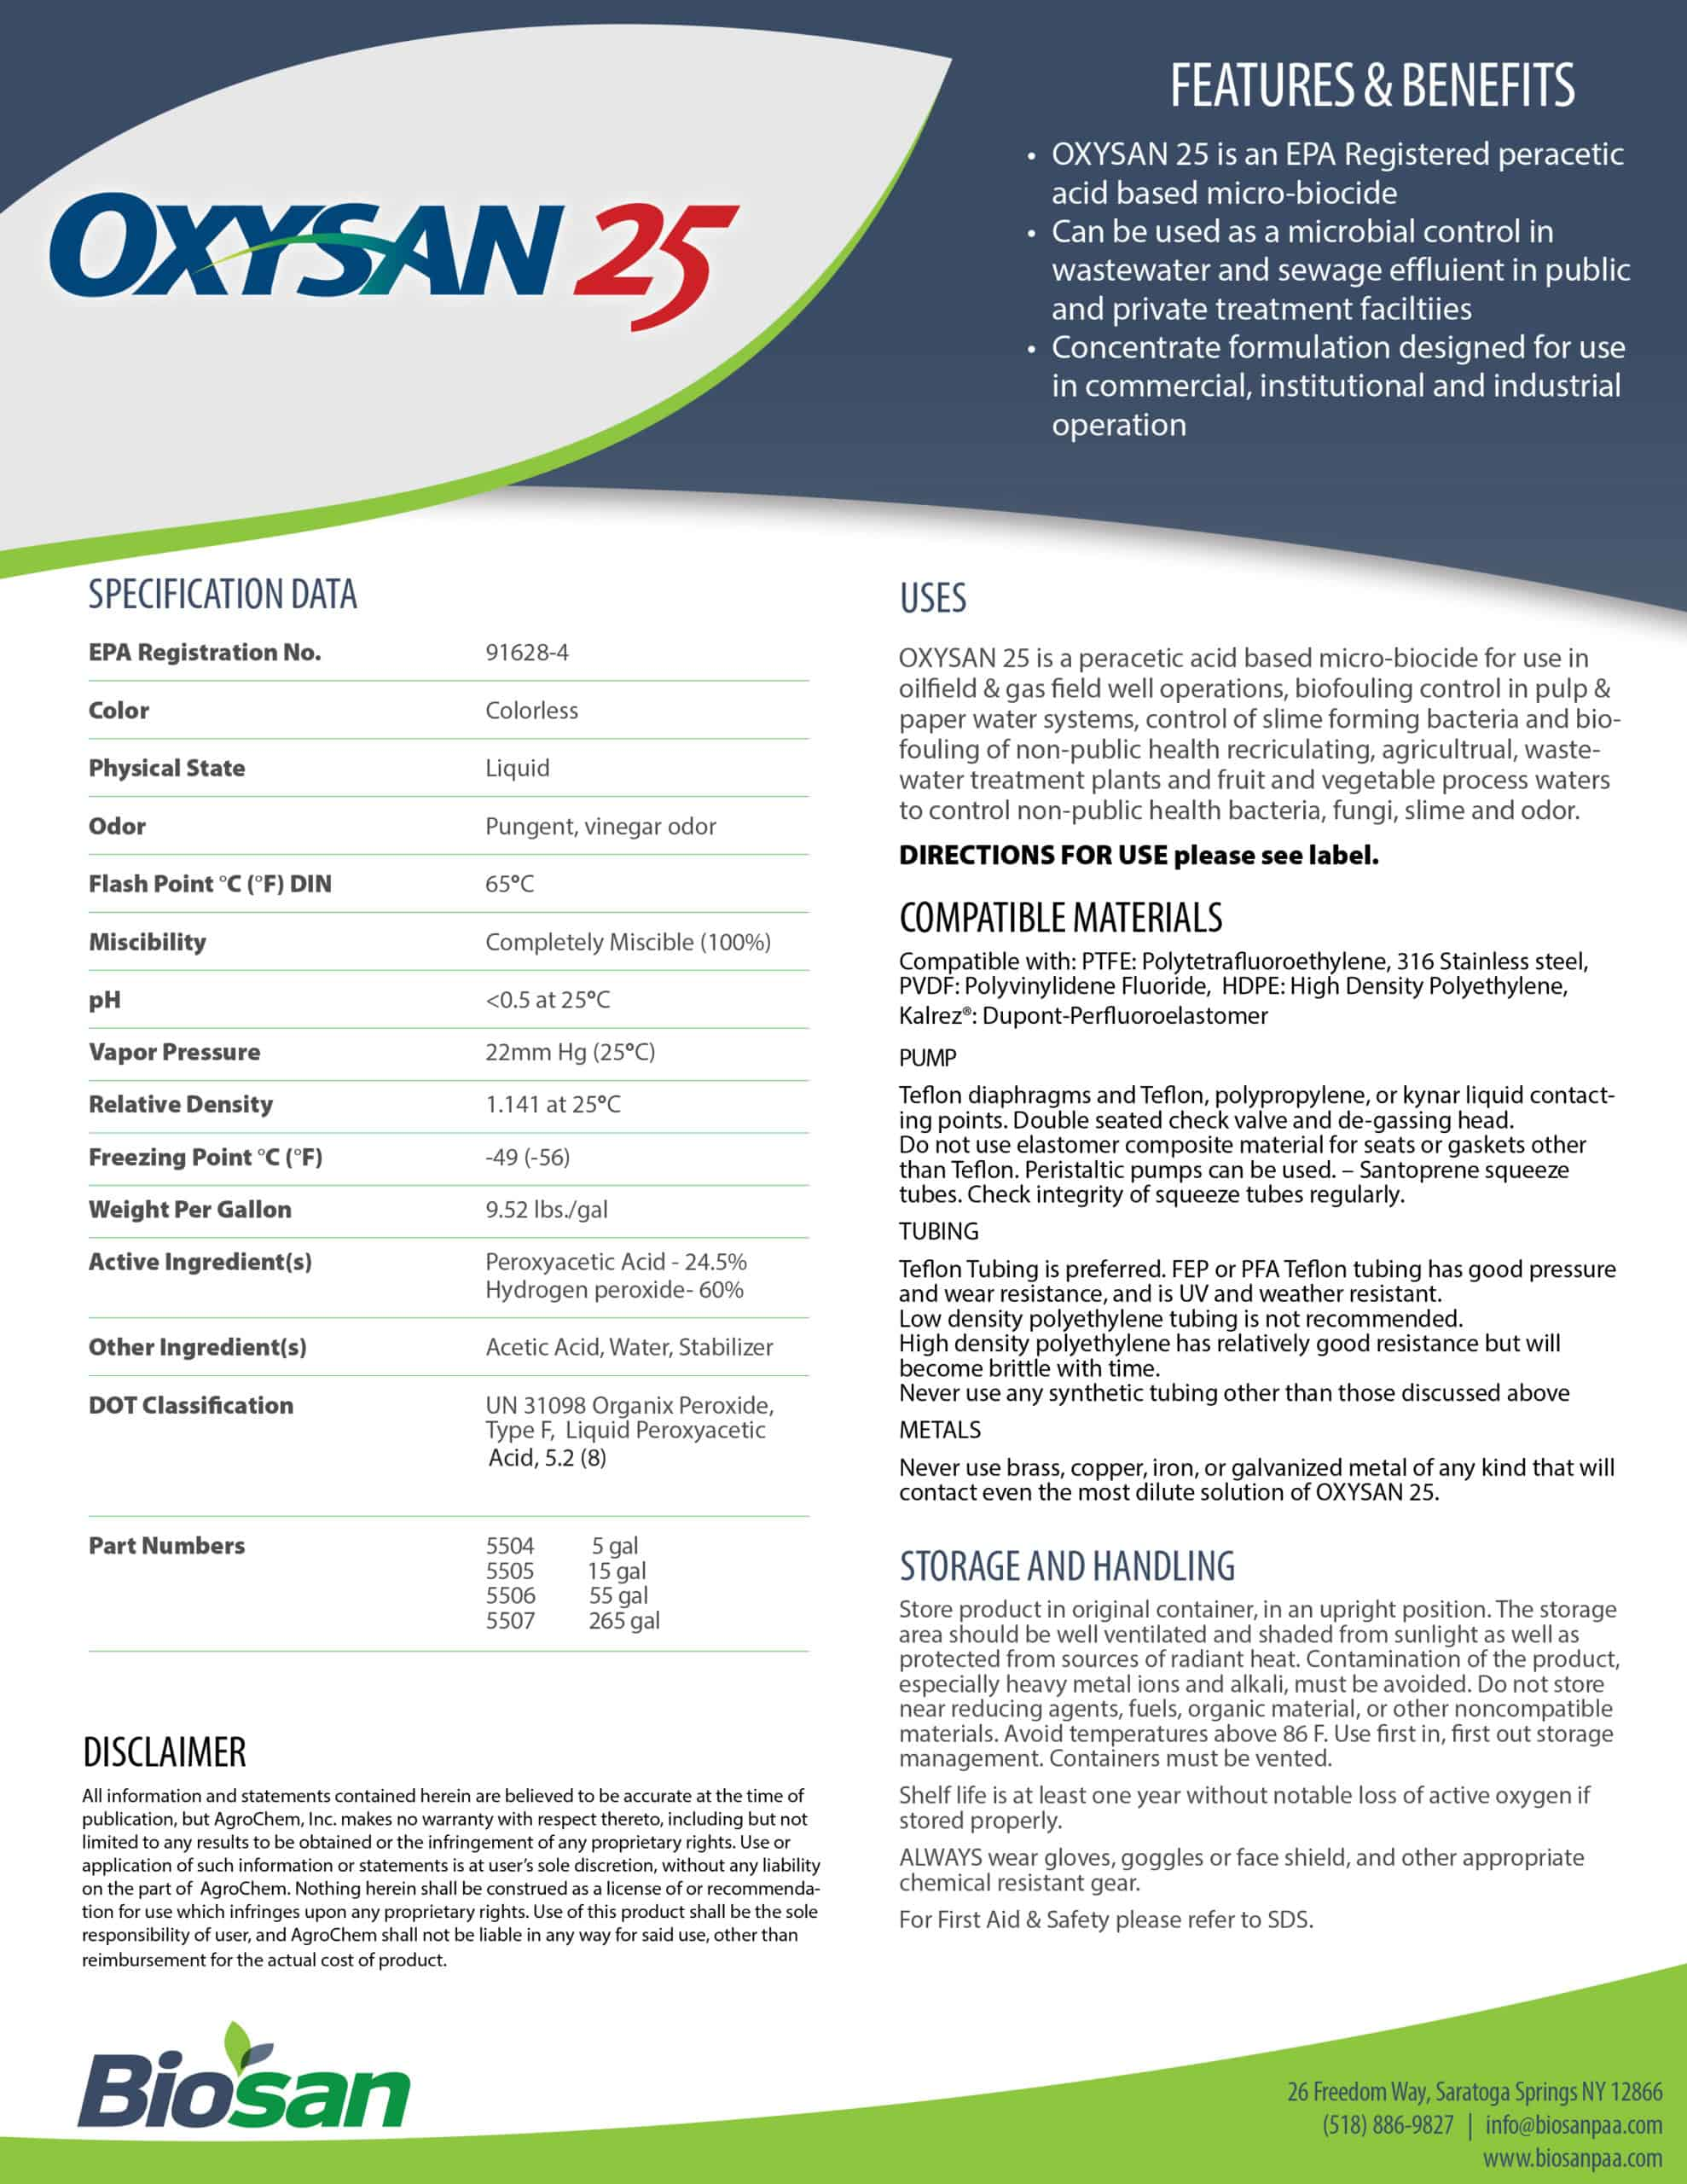 Biosan Oxysan 25 Data Sheet